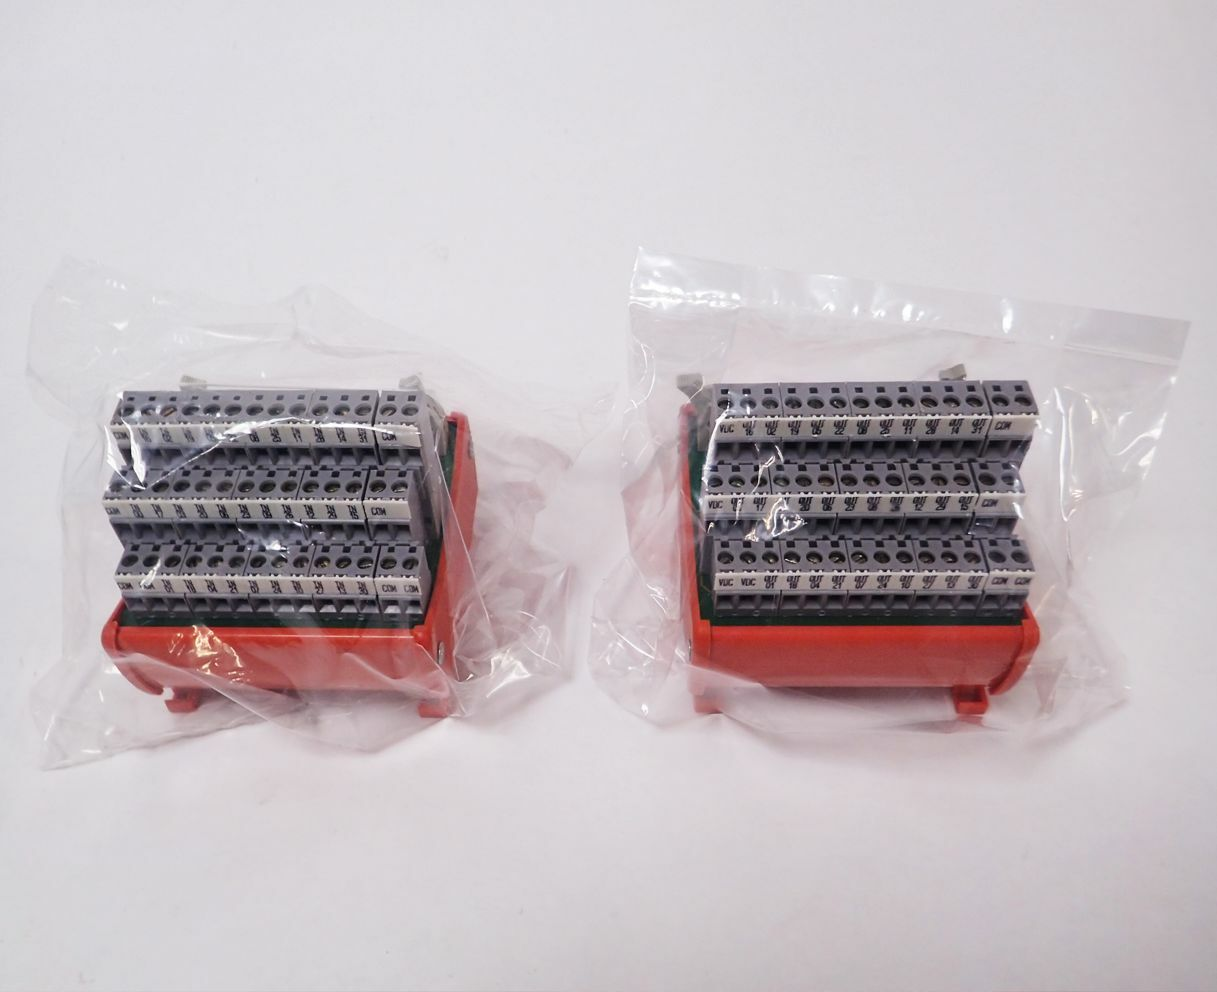 LOT OF 2 NEW ENTRELEC 20 300-14 40-POINT CABLE INTERFACE MODULES NOS